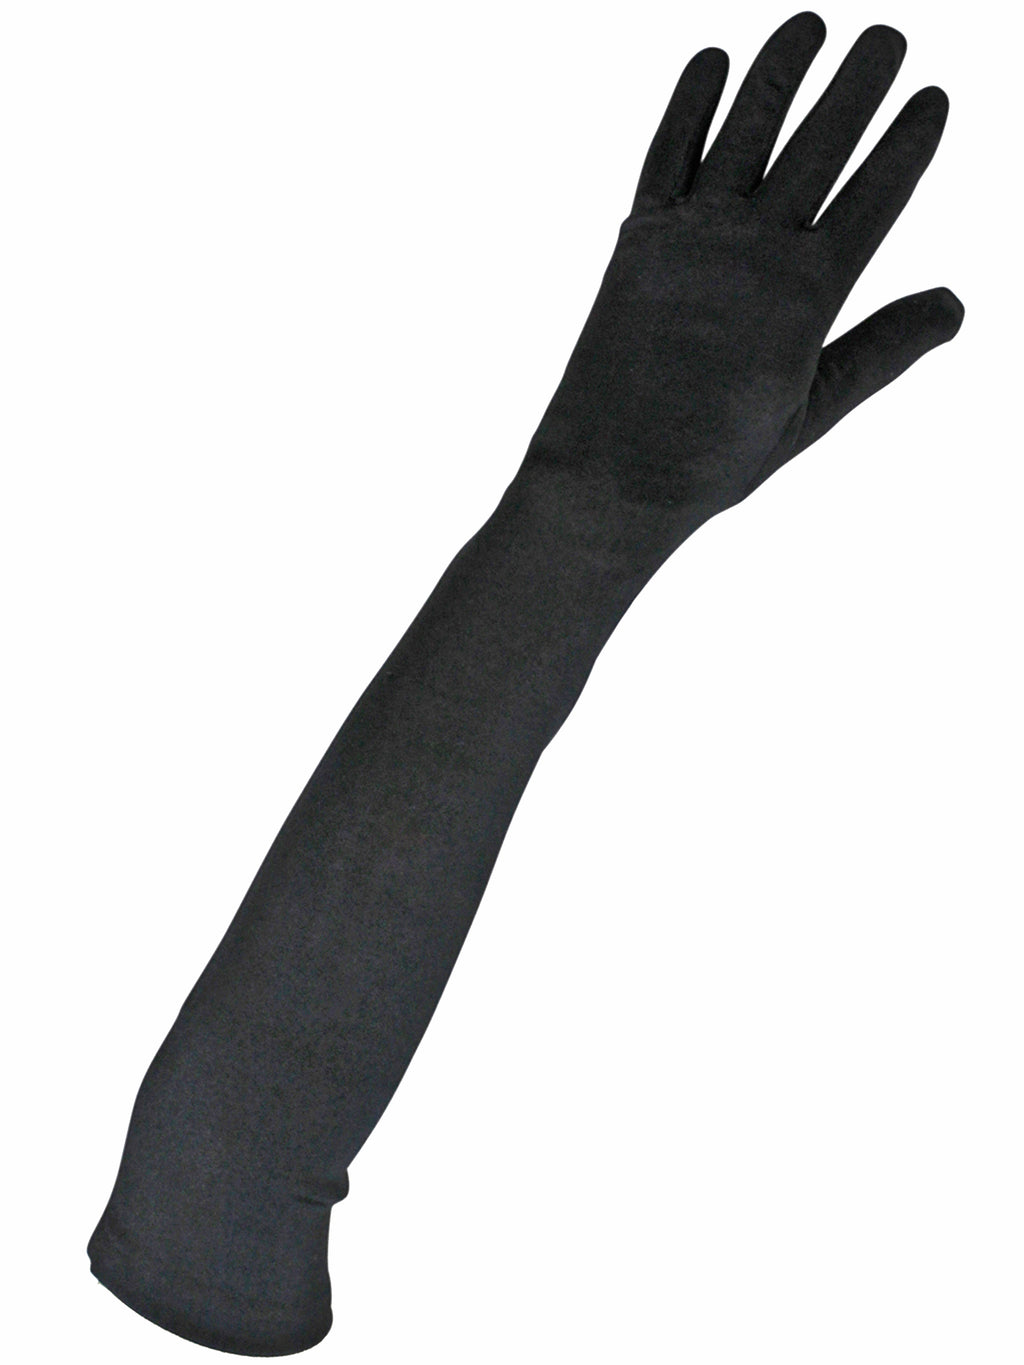 Long 3/4 Arm Length Evening Opera Gloves